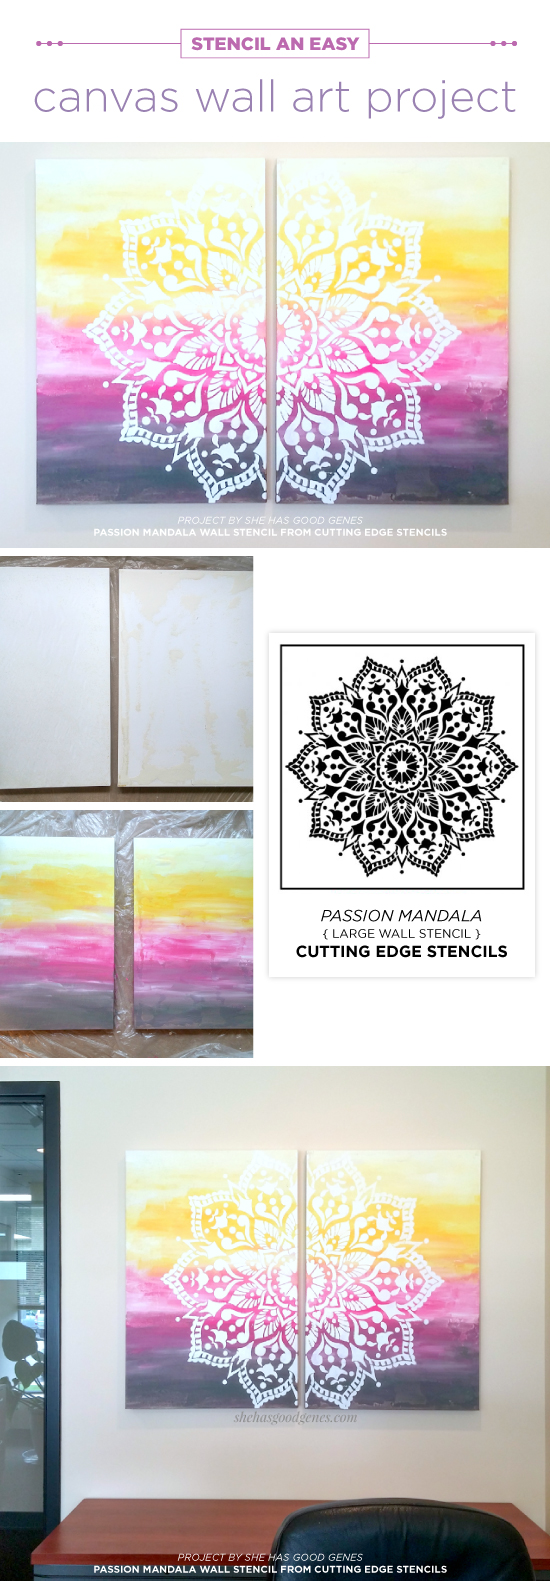 Stencil an easy canvas wall art project for Printable stencils for canvas painting